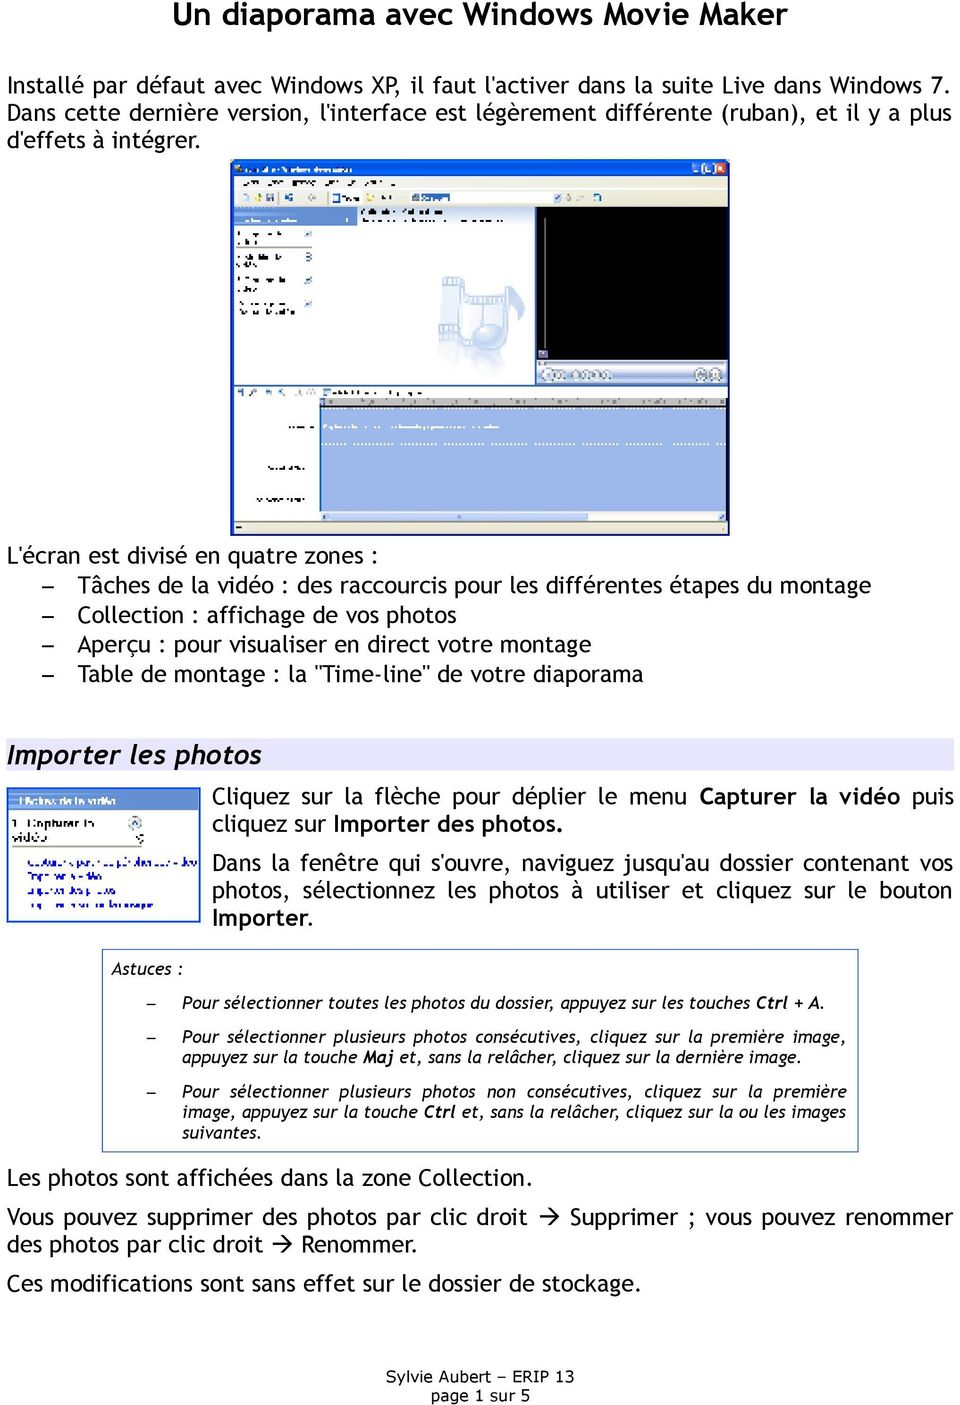 L'écran est divisé en quatre zones : Tâches de la vidéo : des raccourcis pour les différentes étapes du montage Collection : affichage de vos photos Aperçu : pour visualiser en direct votre montage